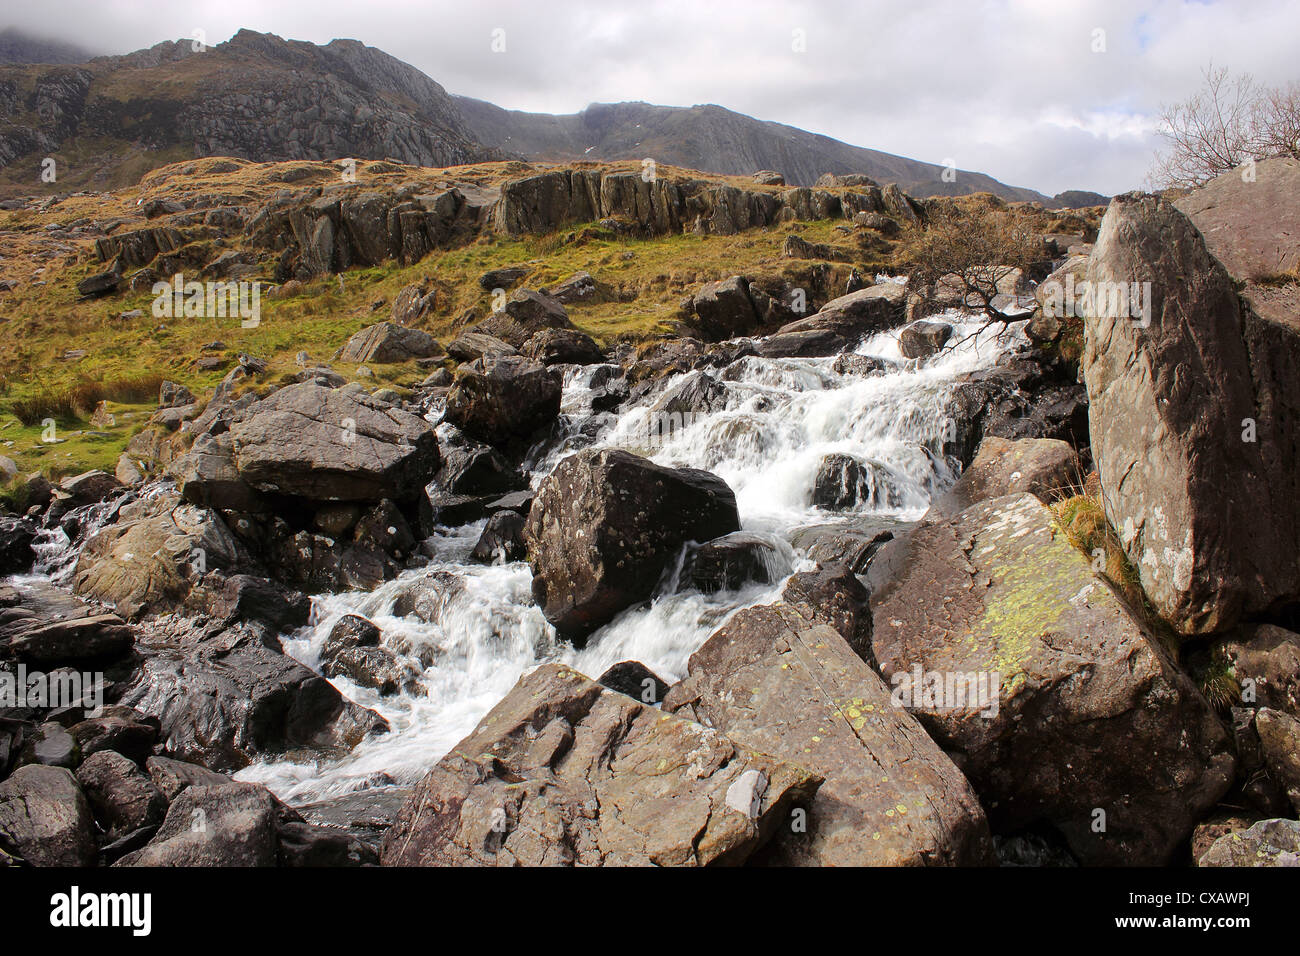 River Idwal drains from Llyn Idwal, in Cwn Idwal before tumbling down the Idwal Falls at Pont Pen-y-benglog, Snowdonia, - Stock Image